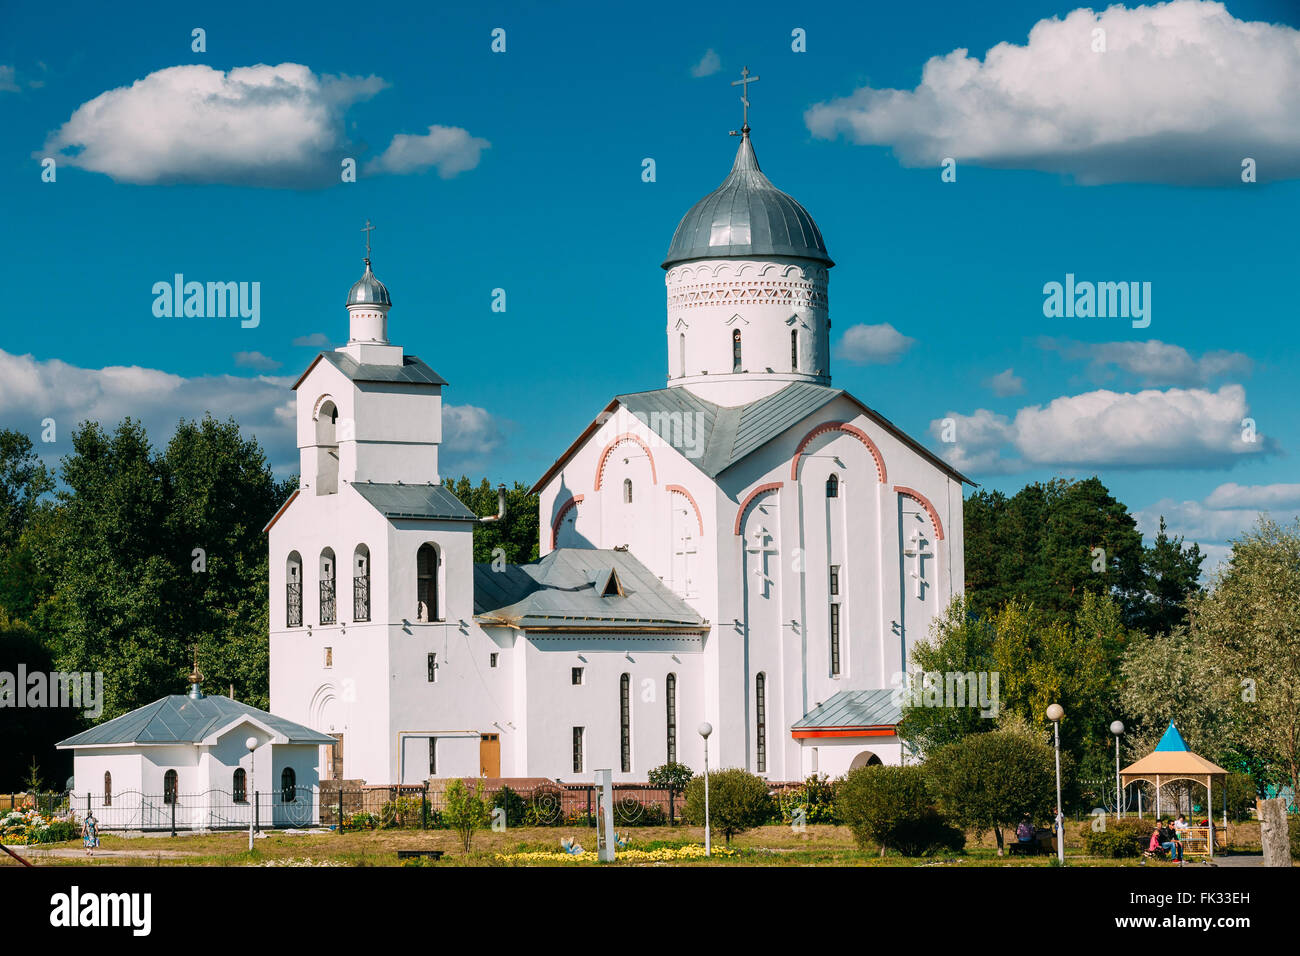 St. Alexander Nevsky Church in Gomel, Belarus. Orthodox Church. Stock Photo